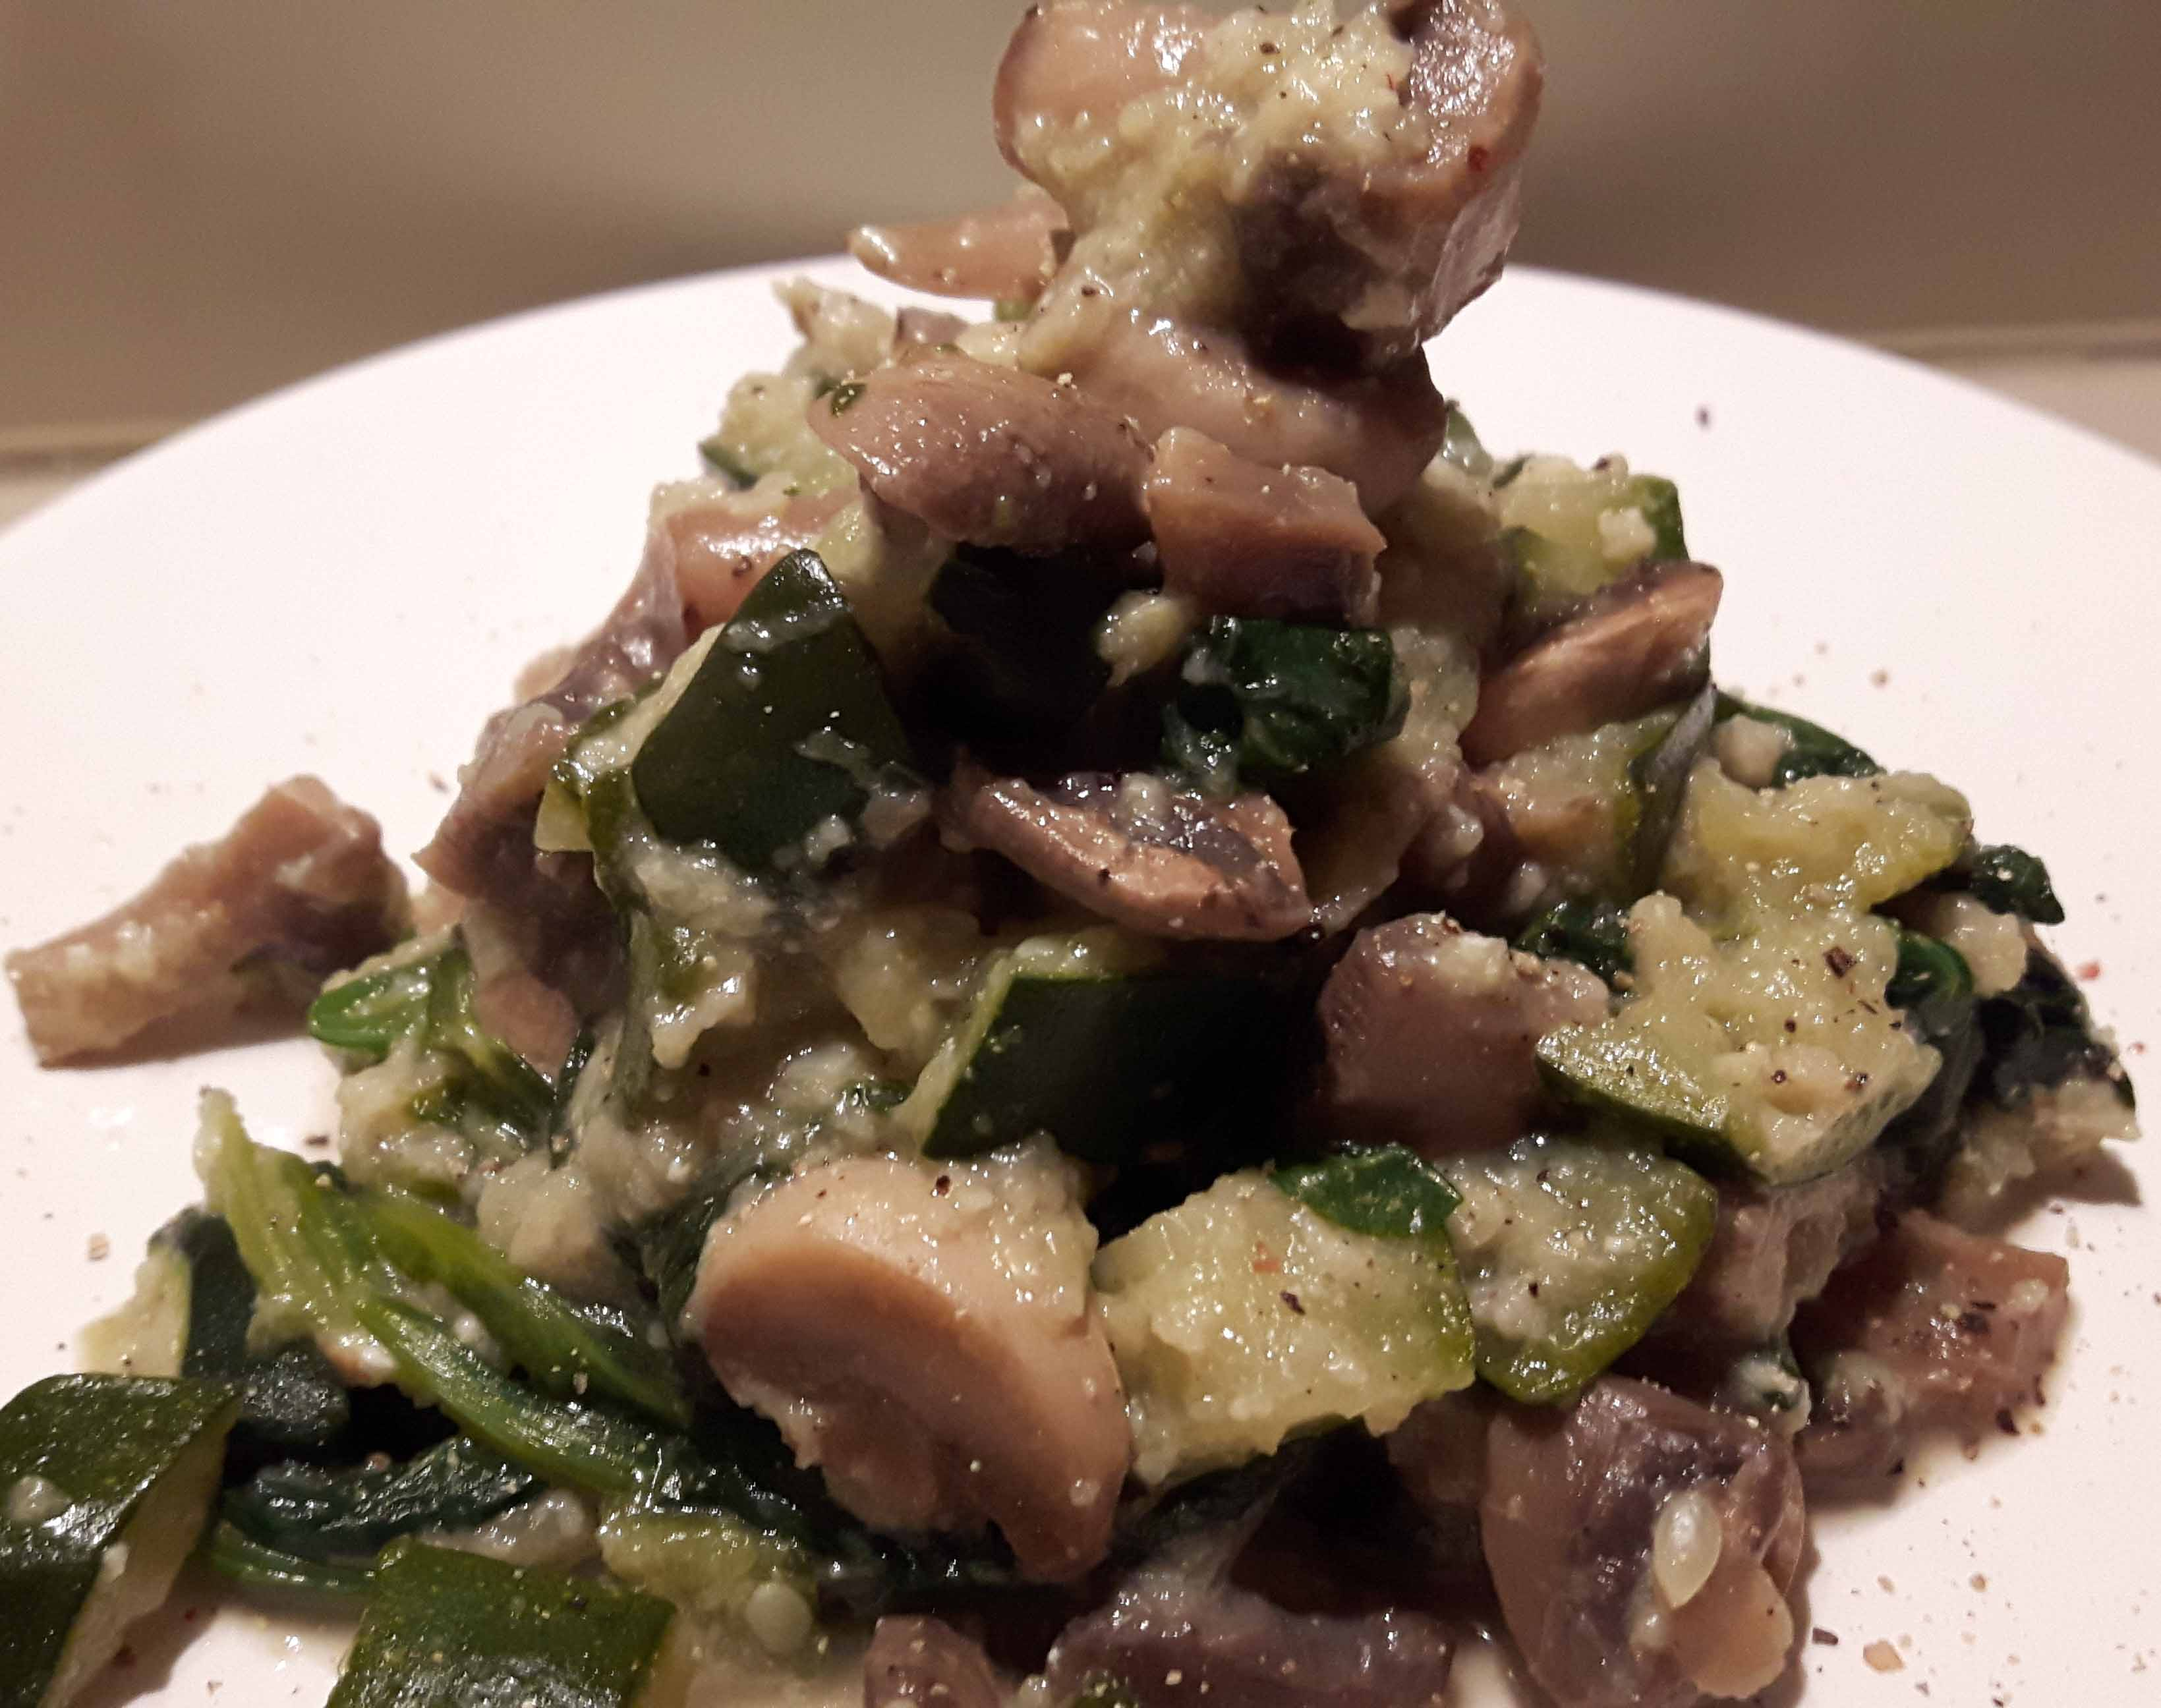 Funghi, zucchine e spinaci con caprinoOriginally Posted on 3 November 2016 and reposted on 5 July 2019